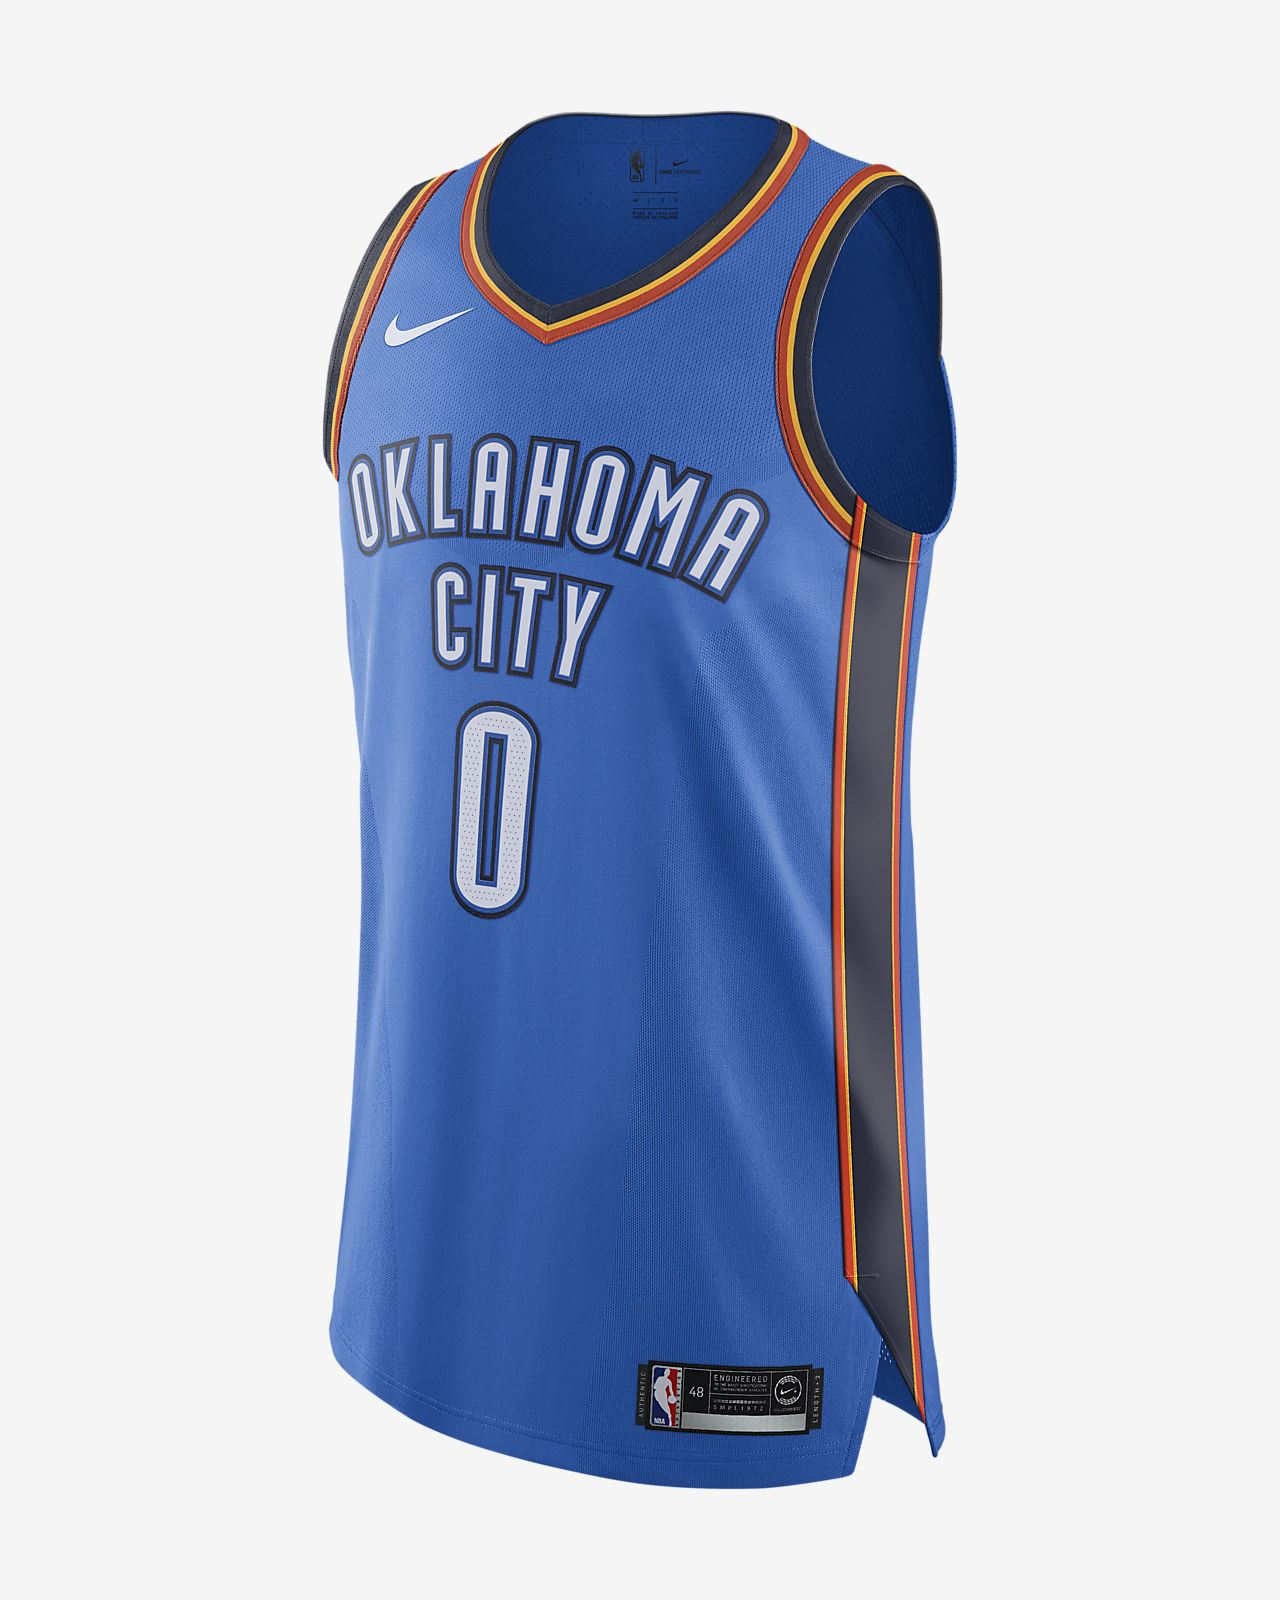 Russell Westbrook Icon Edition Authentic (Oklahoma City Thunder) Nike NBA Connected Basketlinne för män